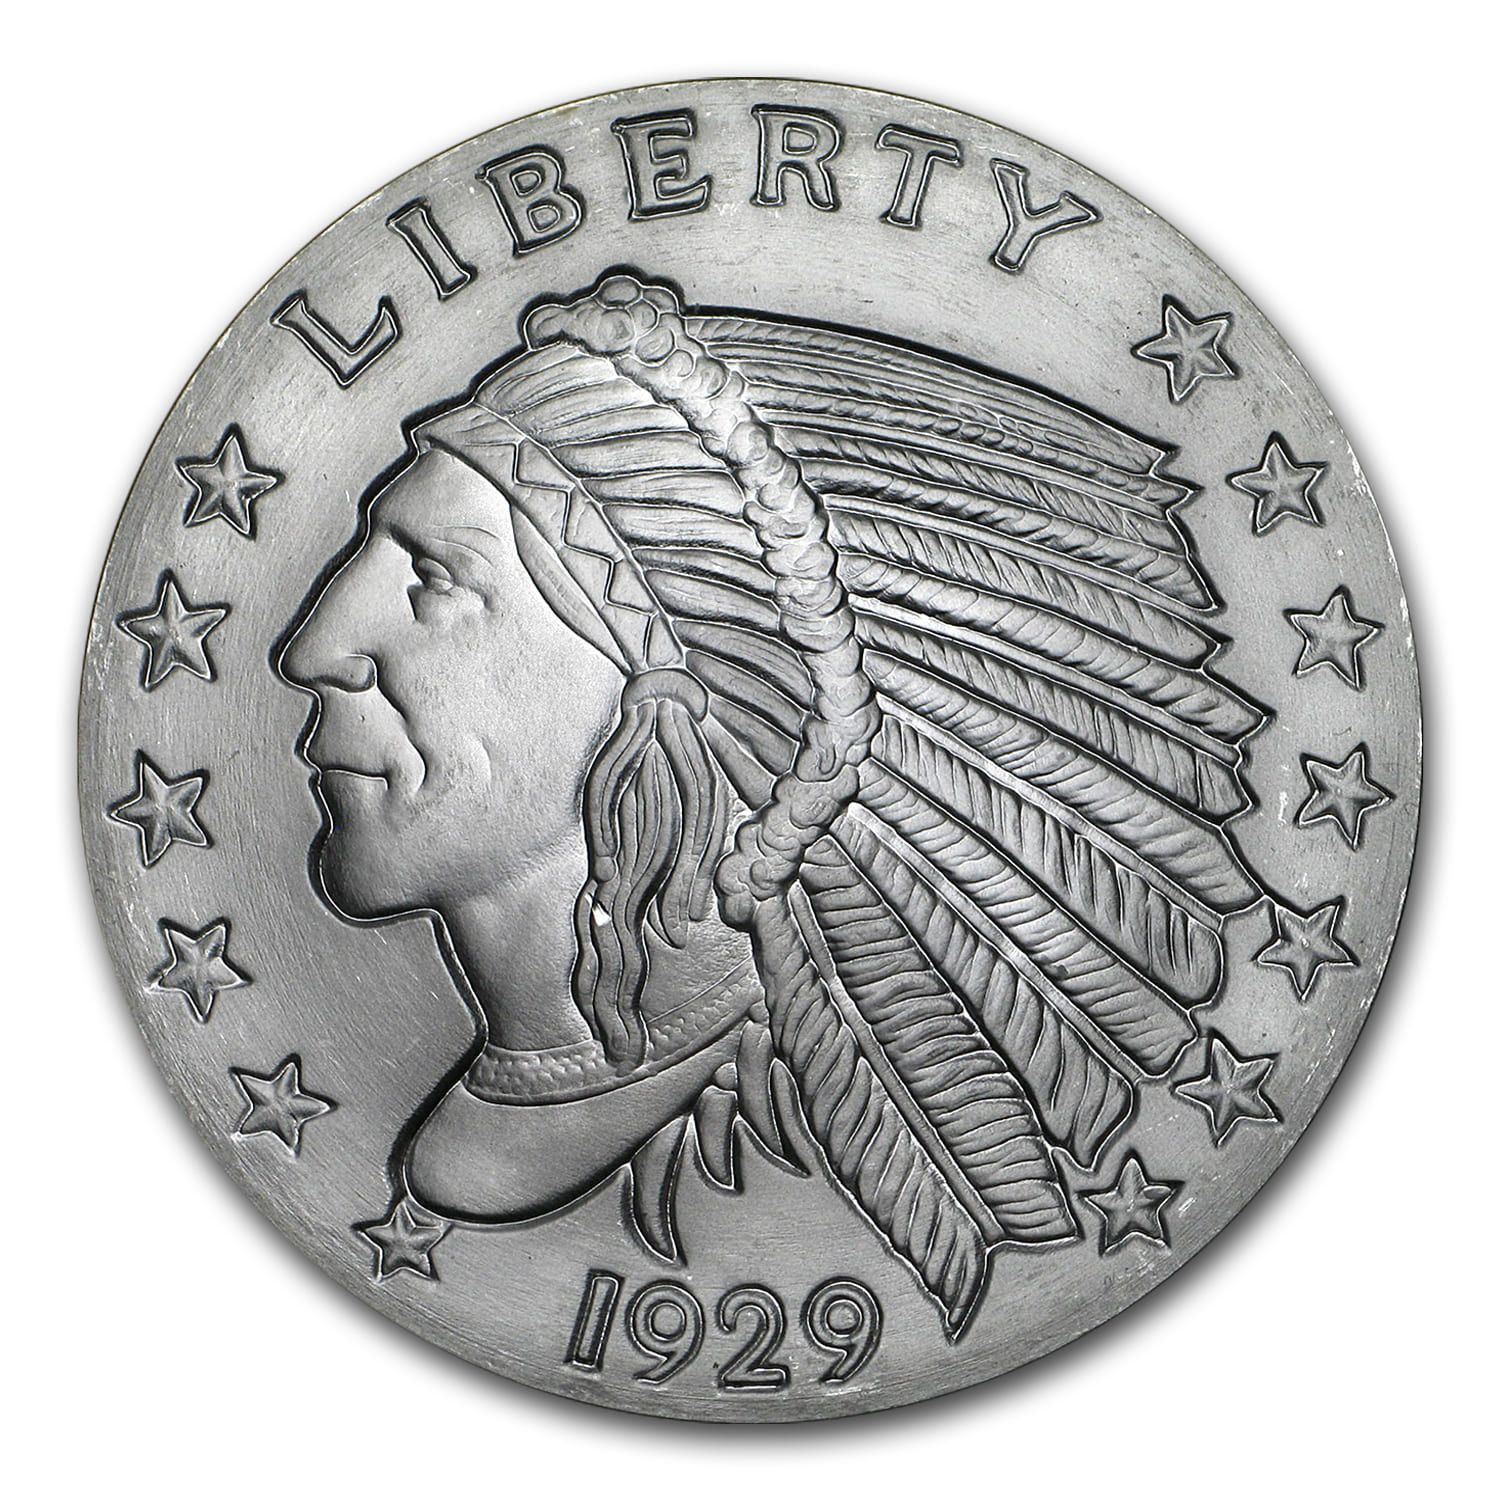 2 oz Silver Round - Incuse Indian